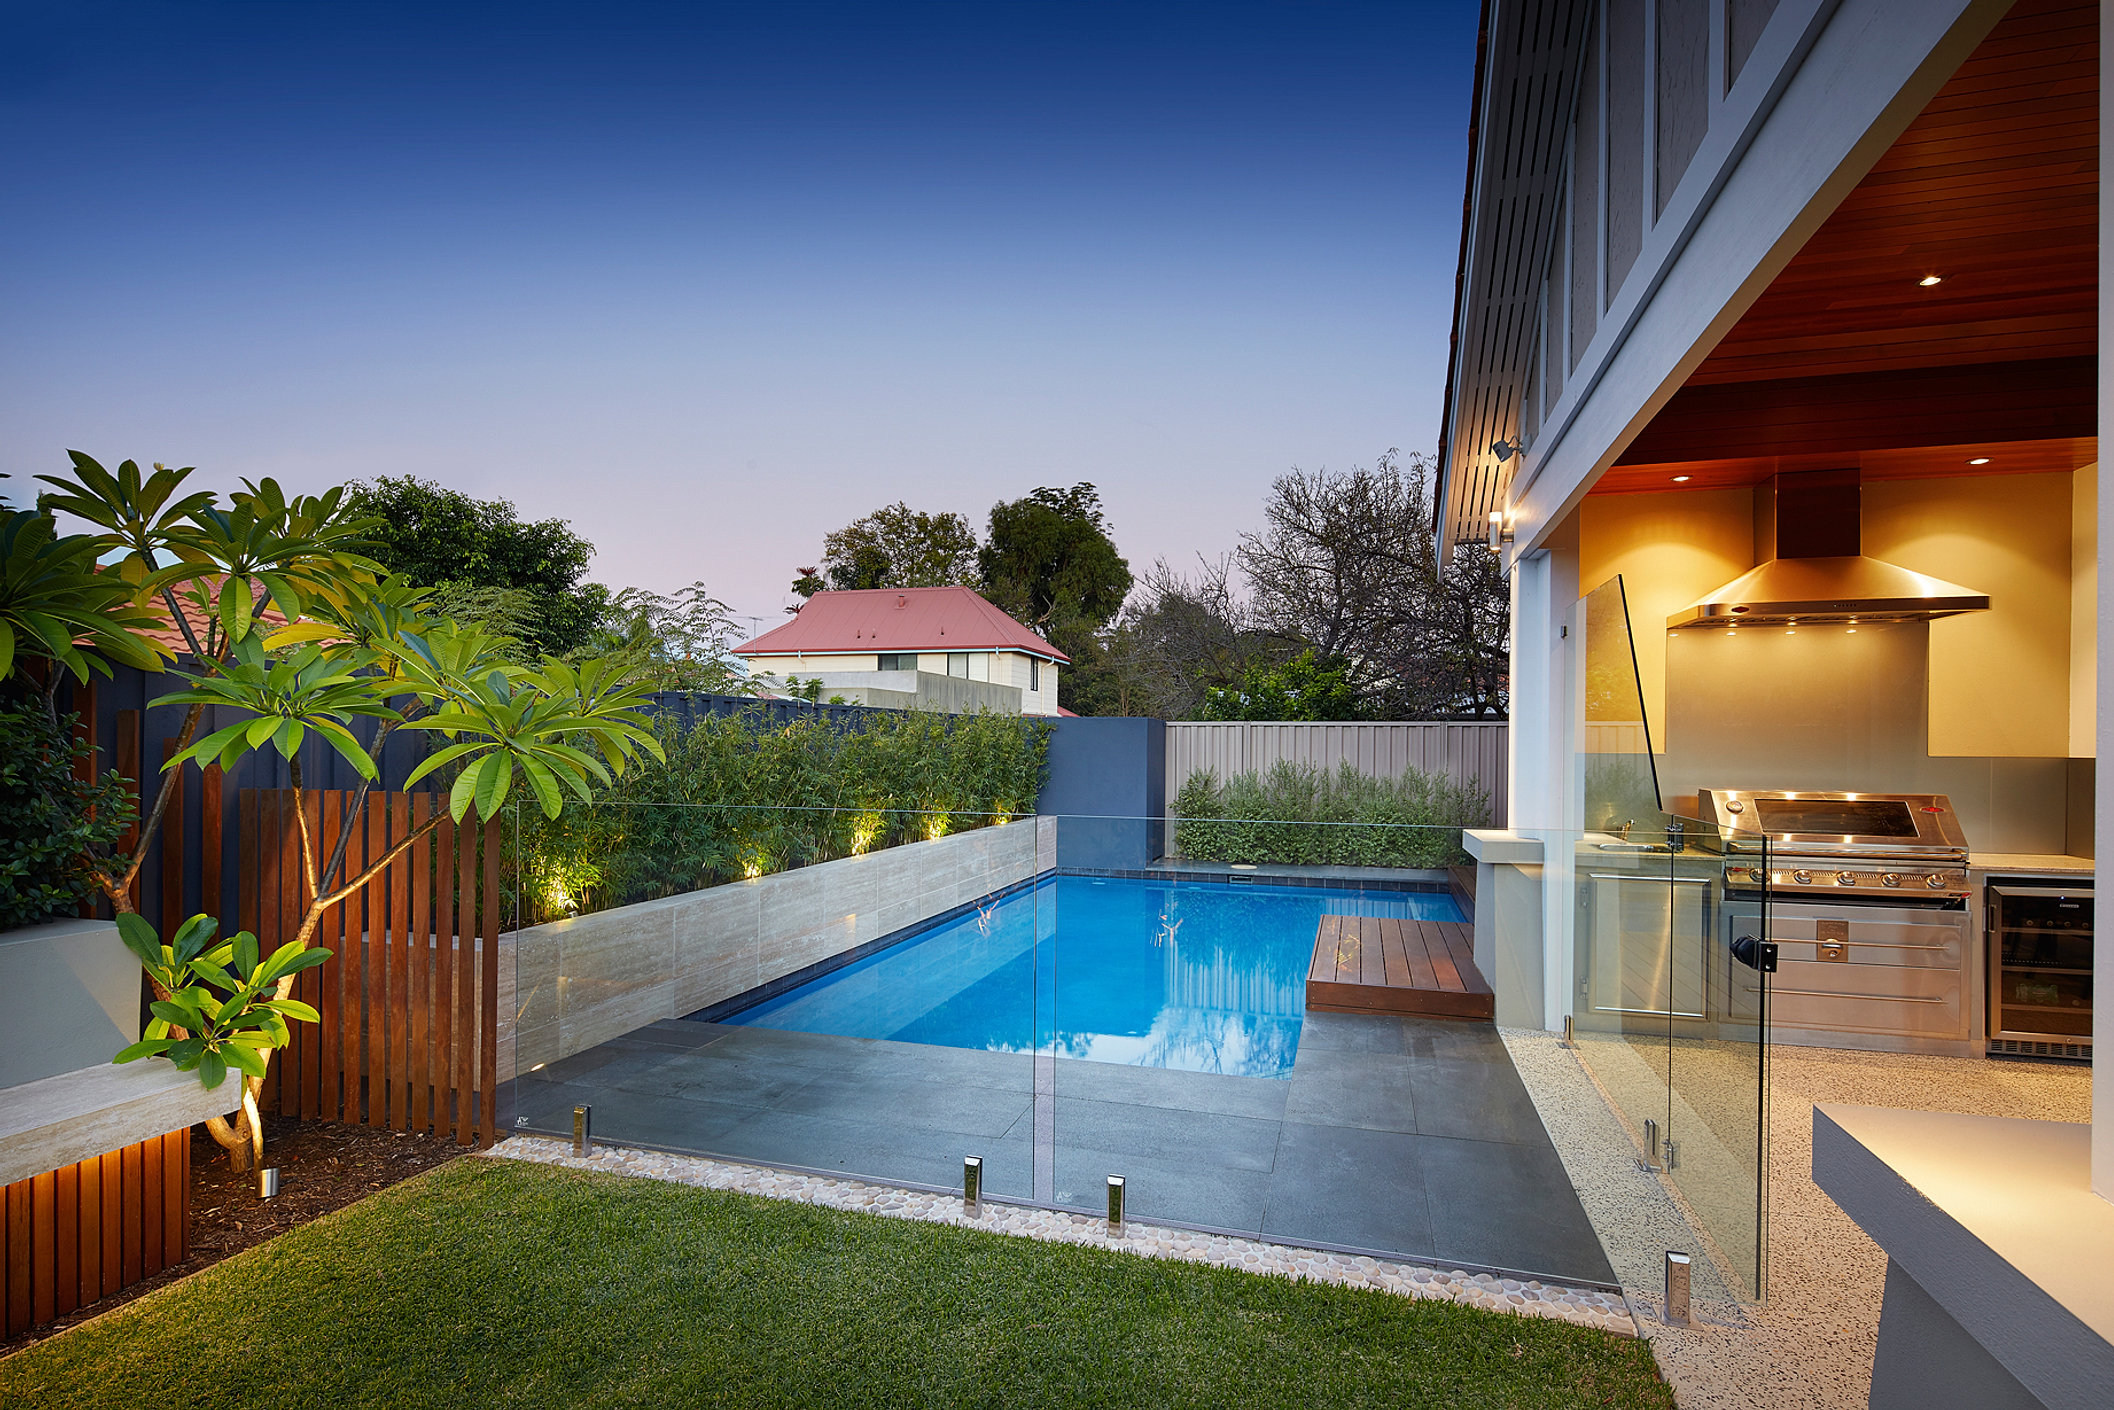 Principal pools landscapes lanscape design perth for Pool landscaping ideas